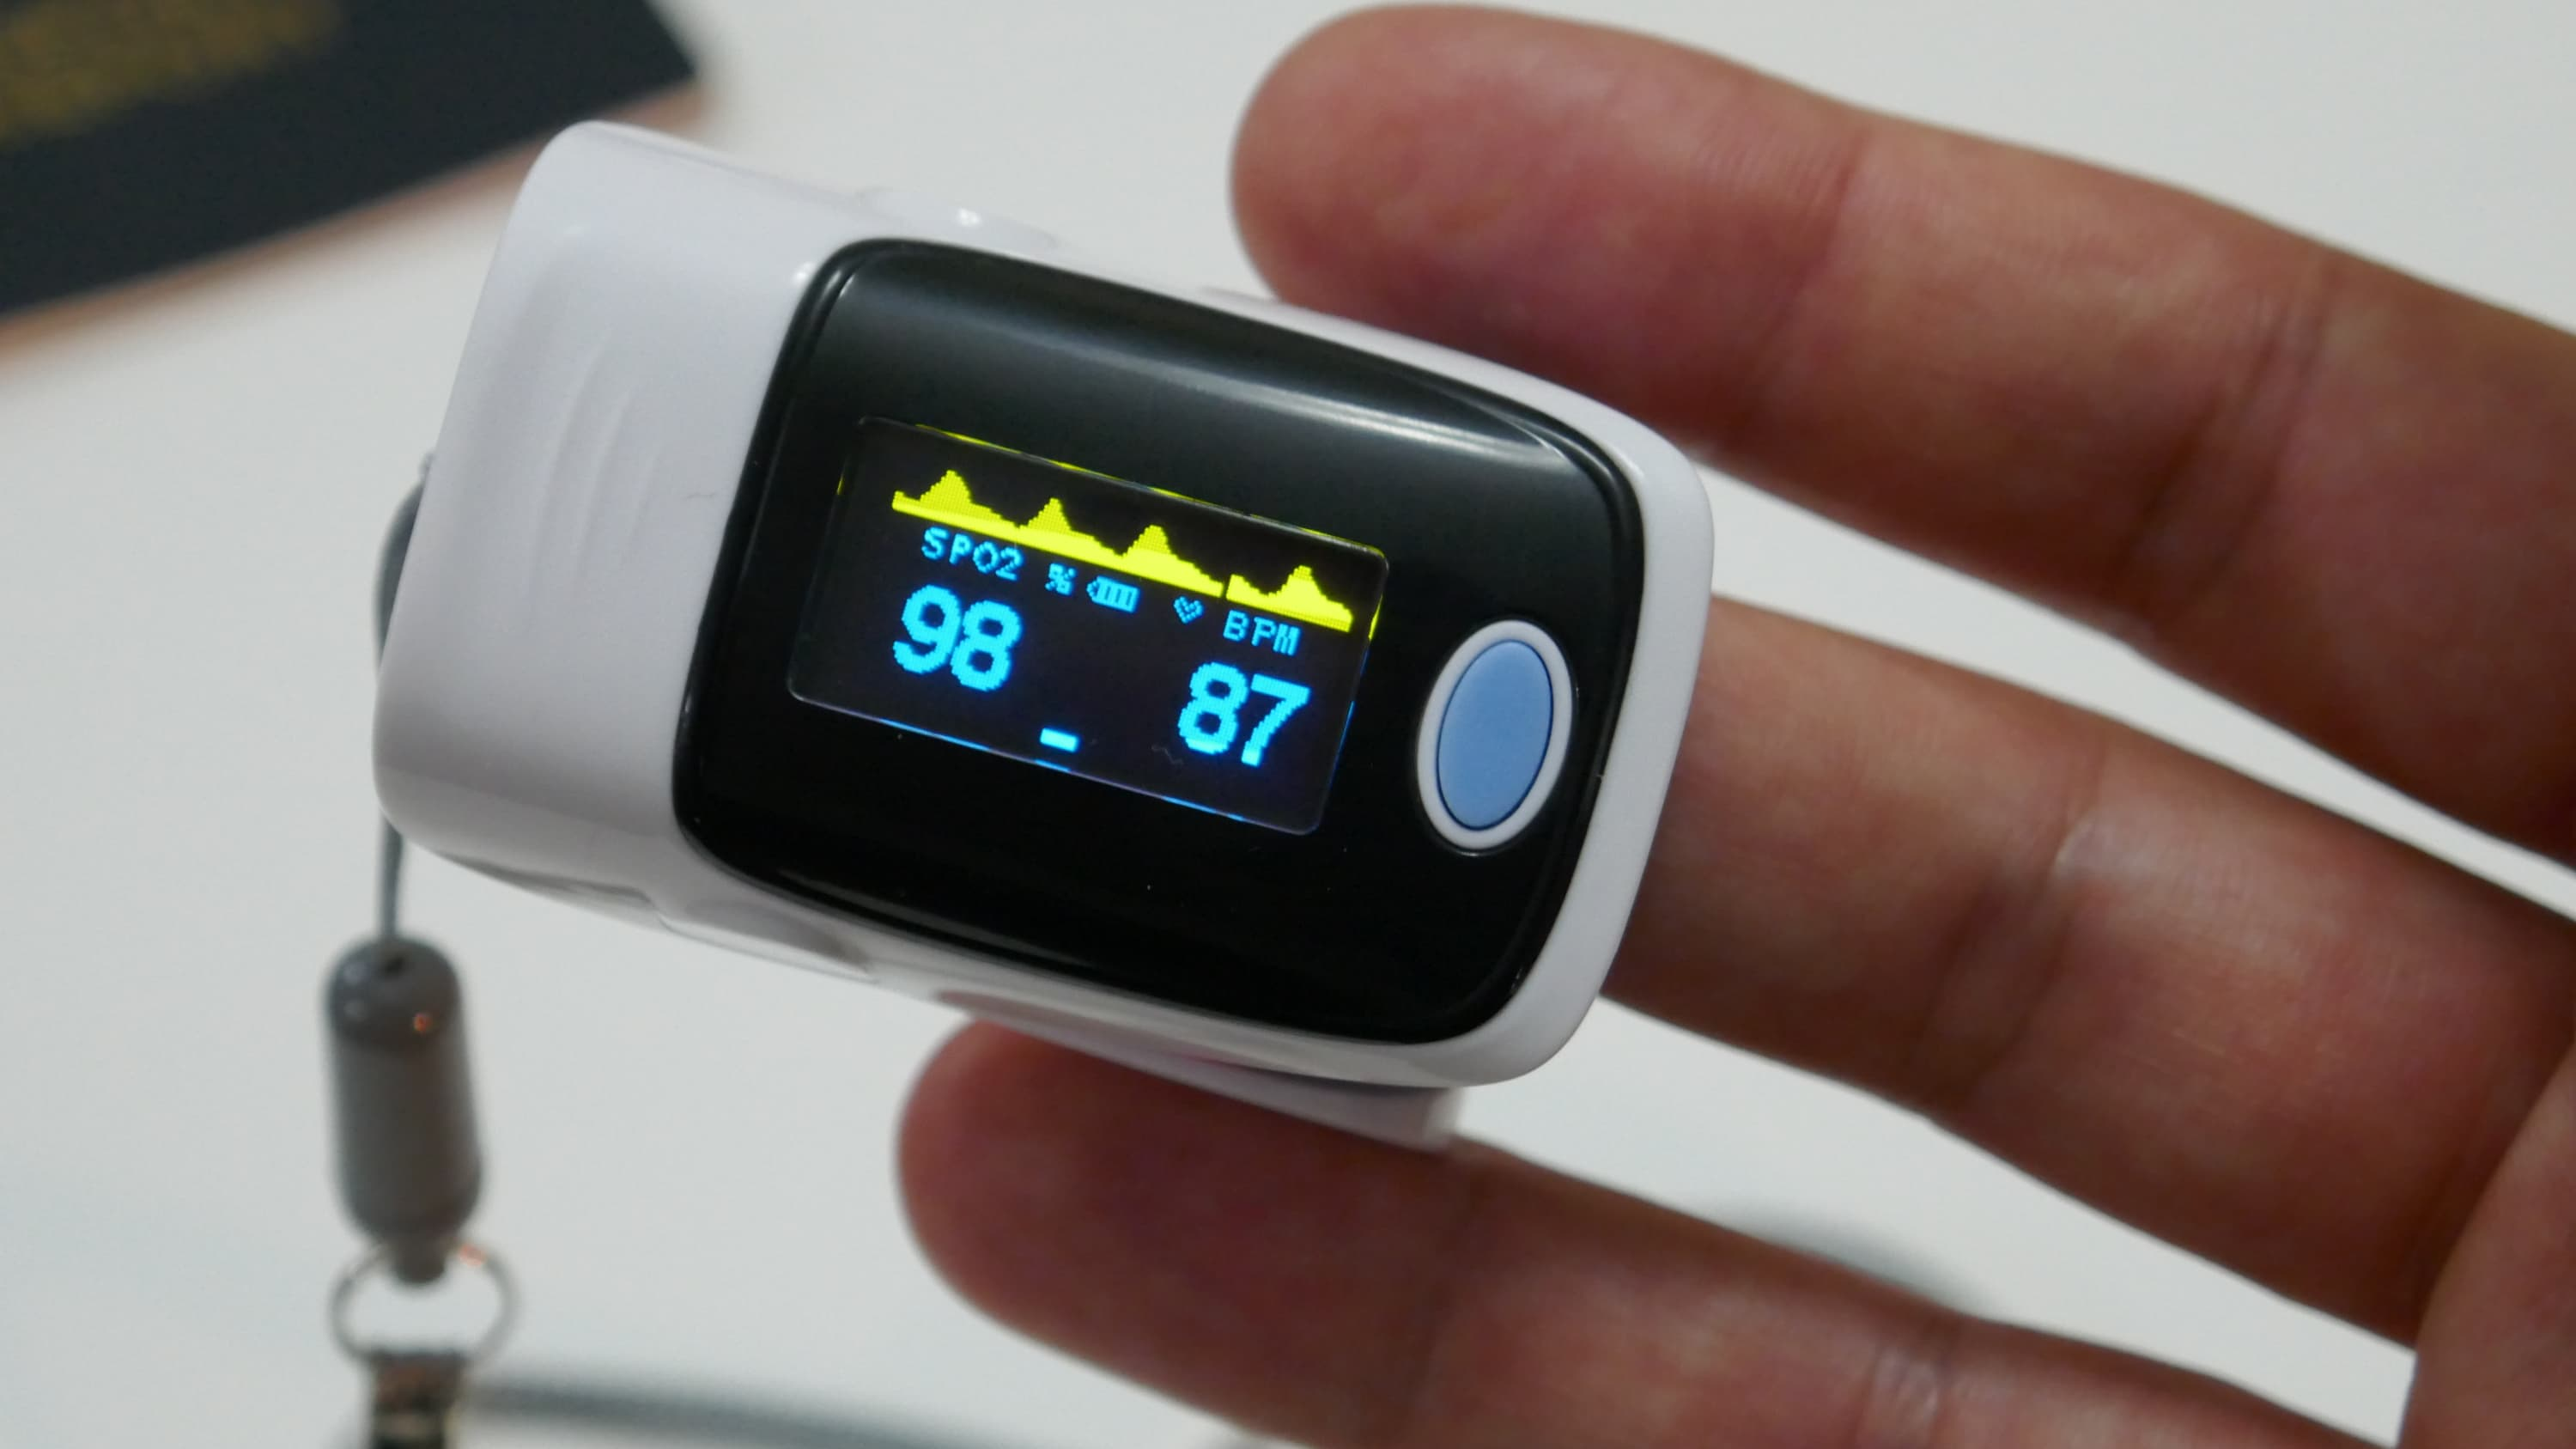 pulse oximeter, sometimes used to monitor COVID-19 symptoms